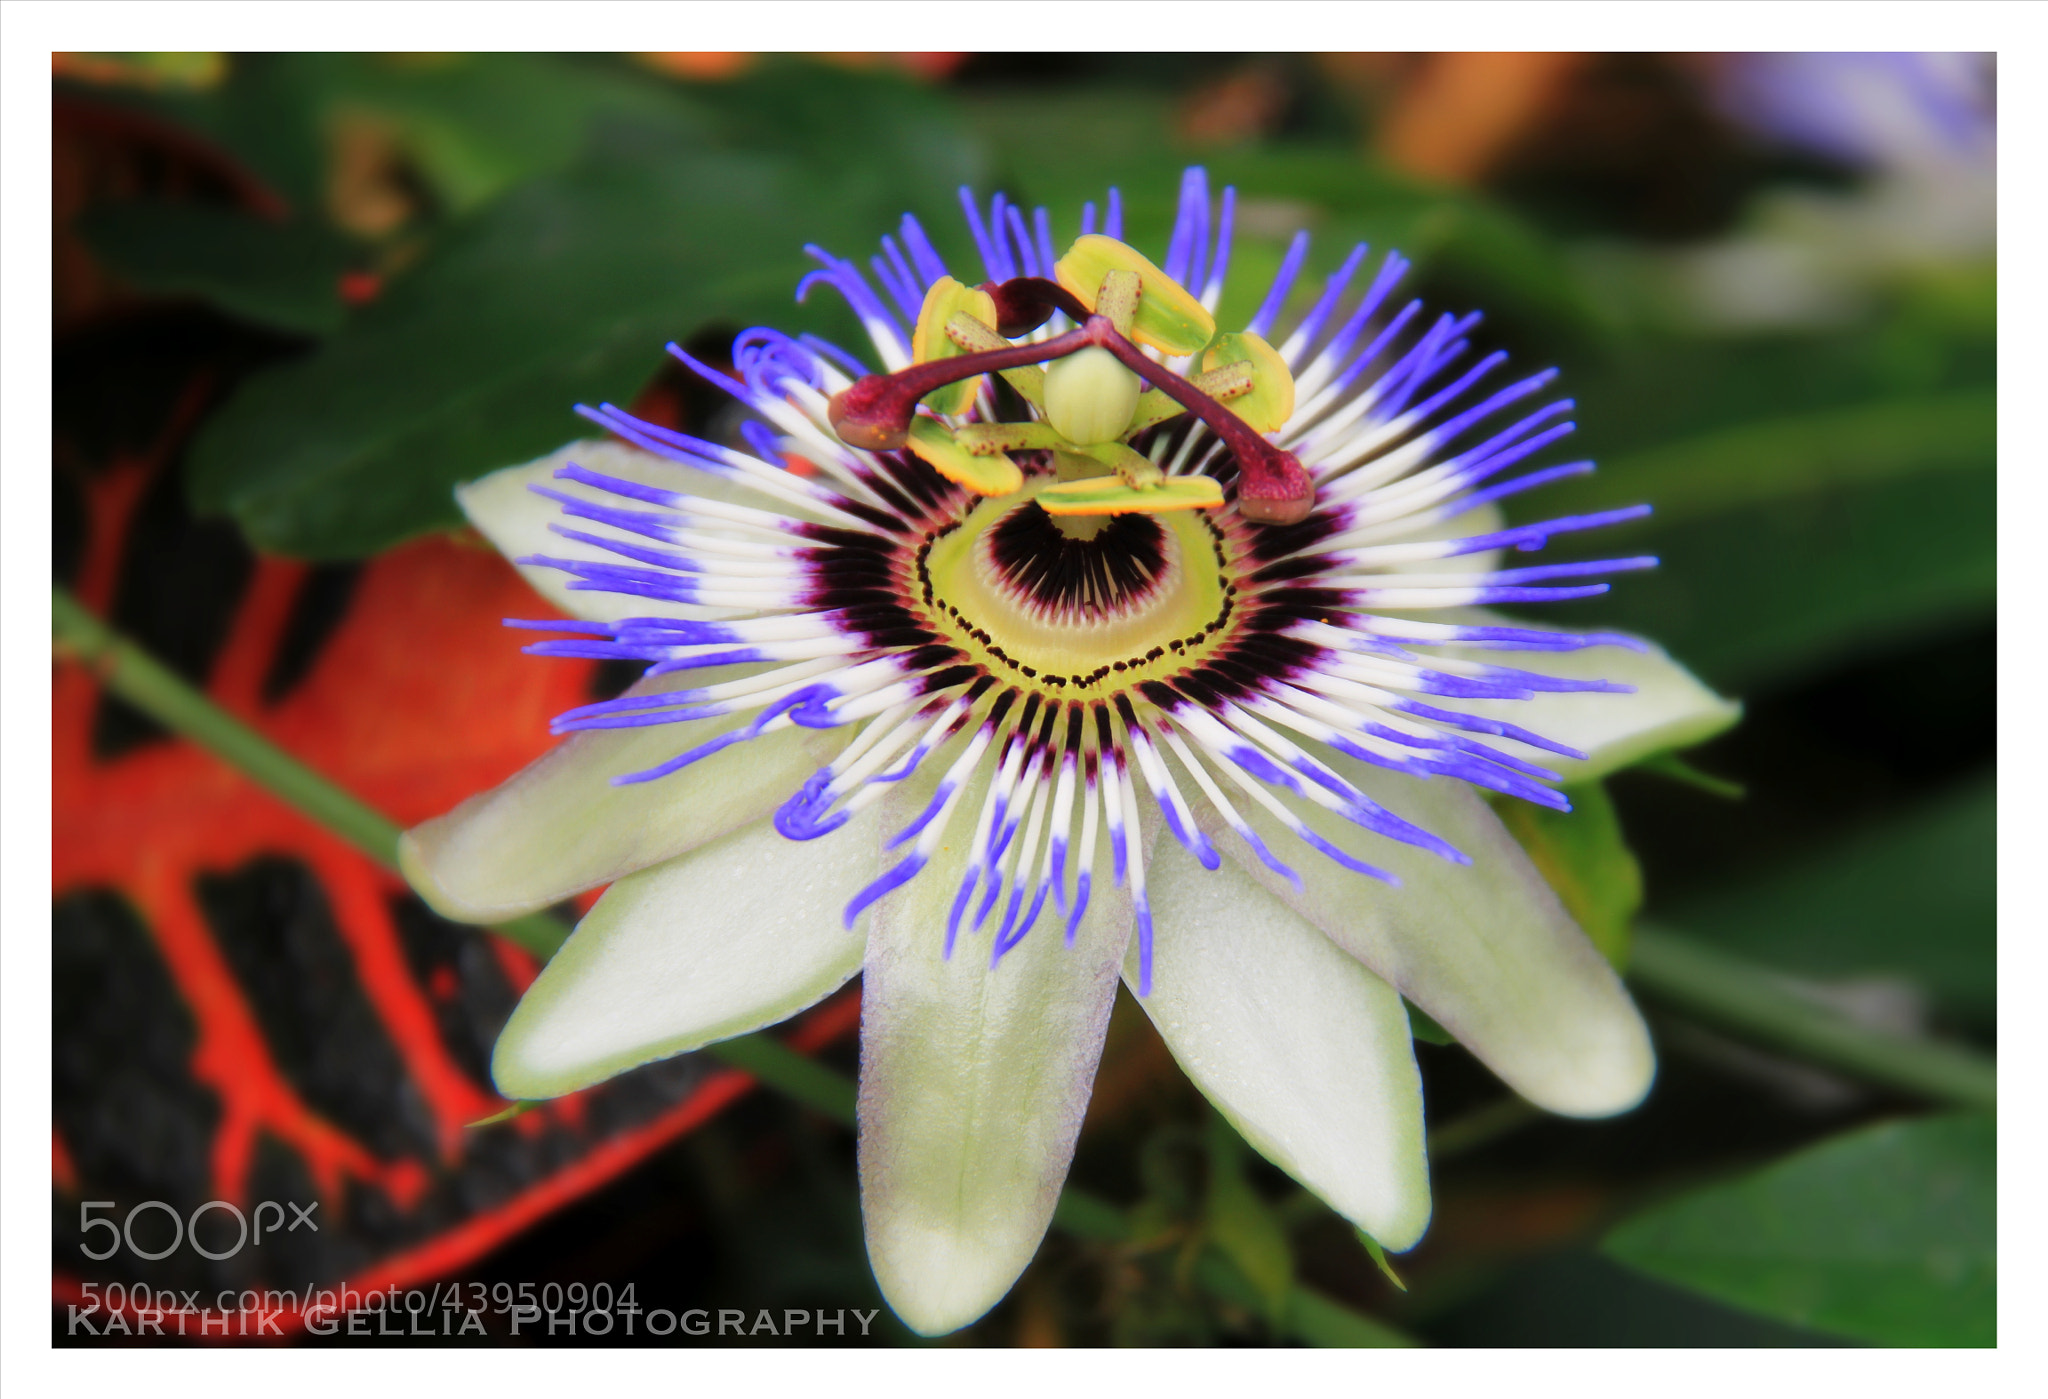 Photograph The Beautiful Passion Flower by Karthik Gellia on 500px